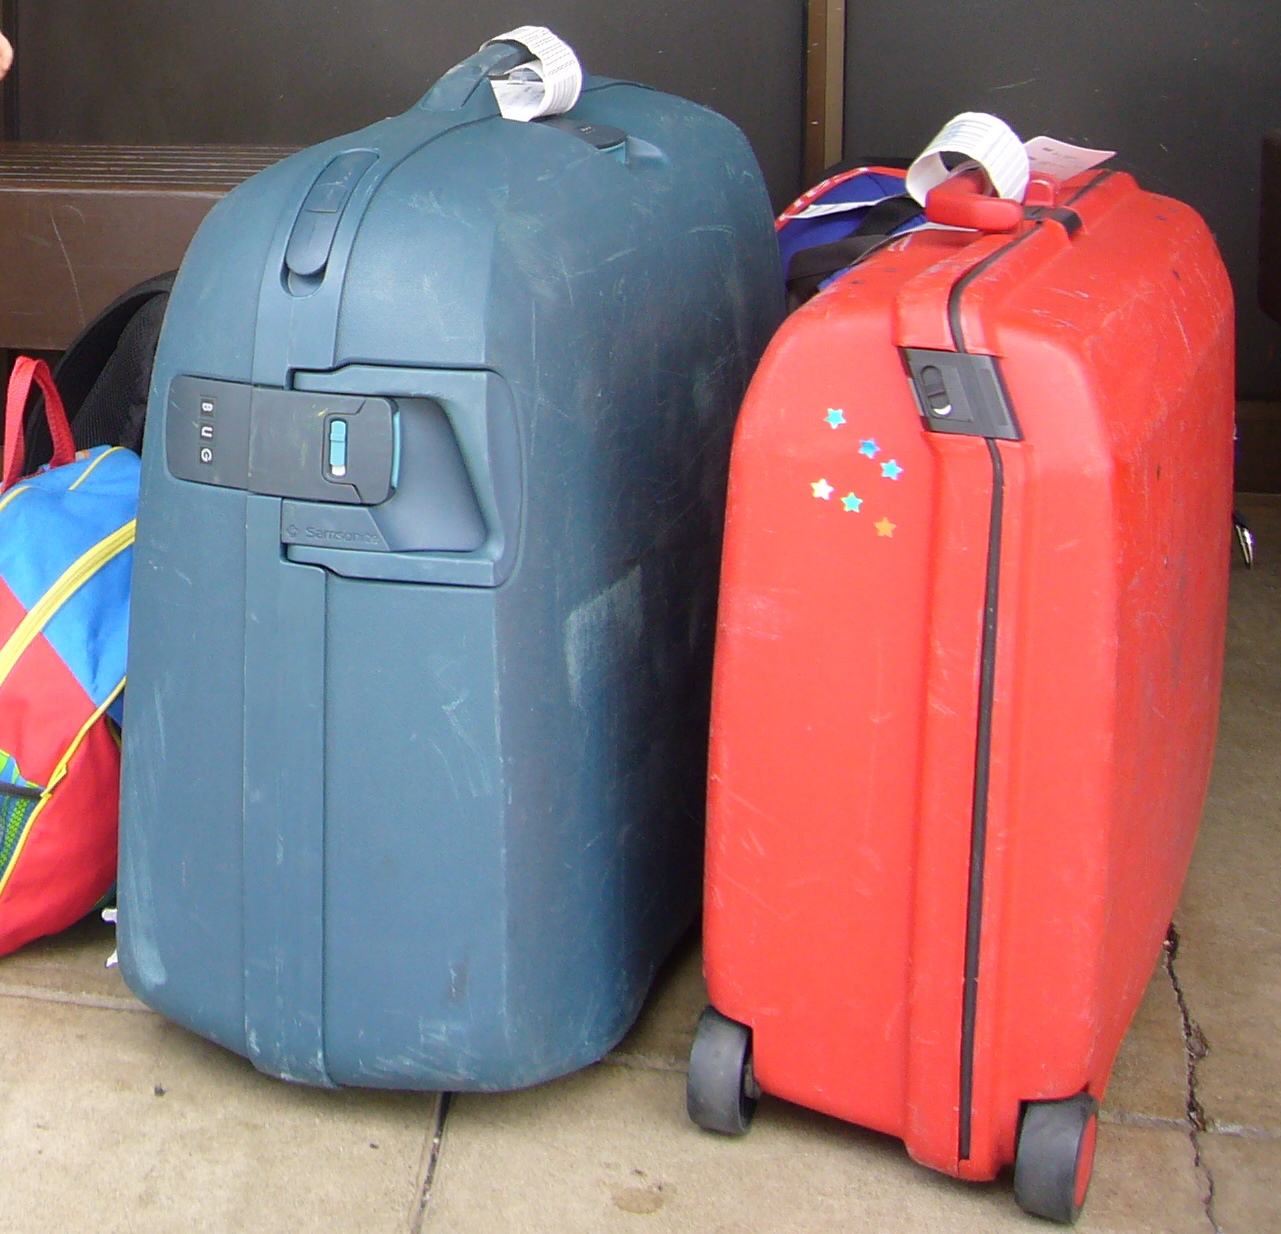 Traveling With Kids: Hard or soft? The luggage question.